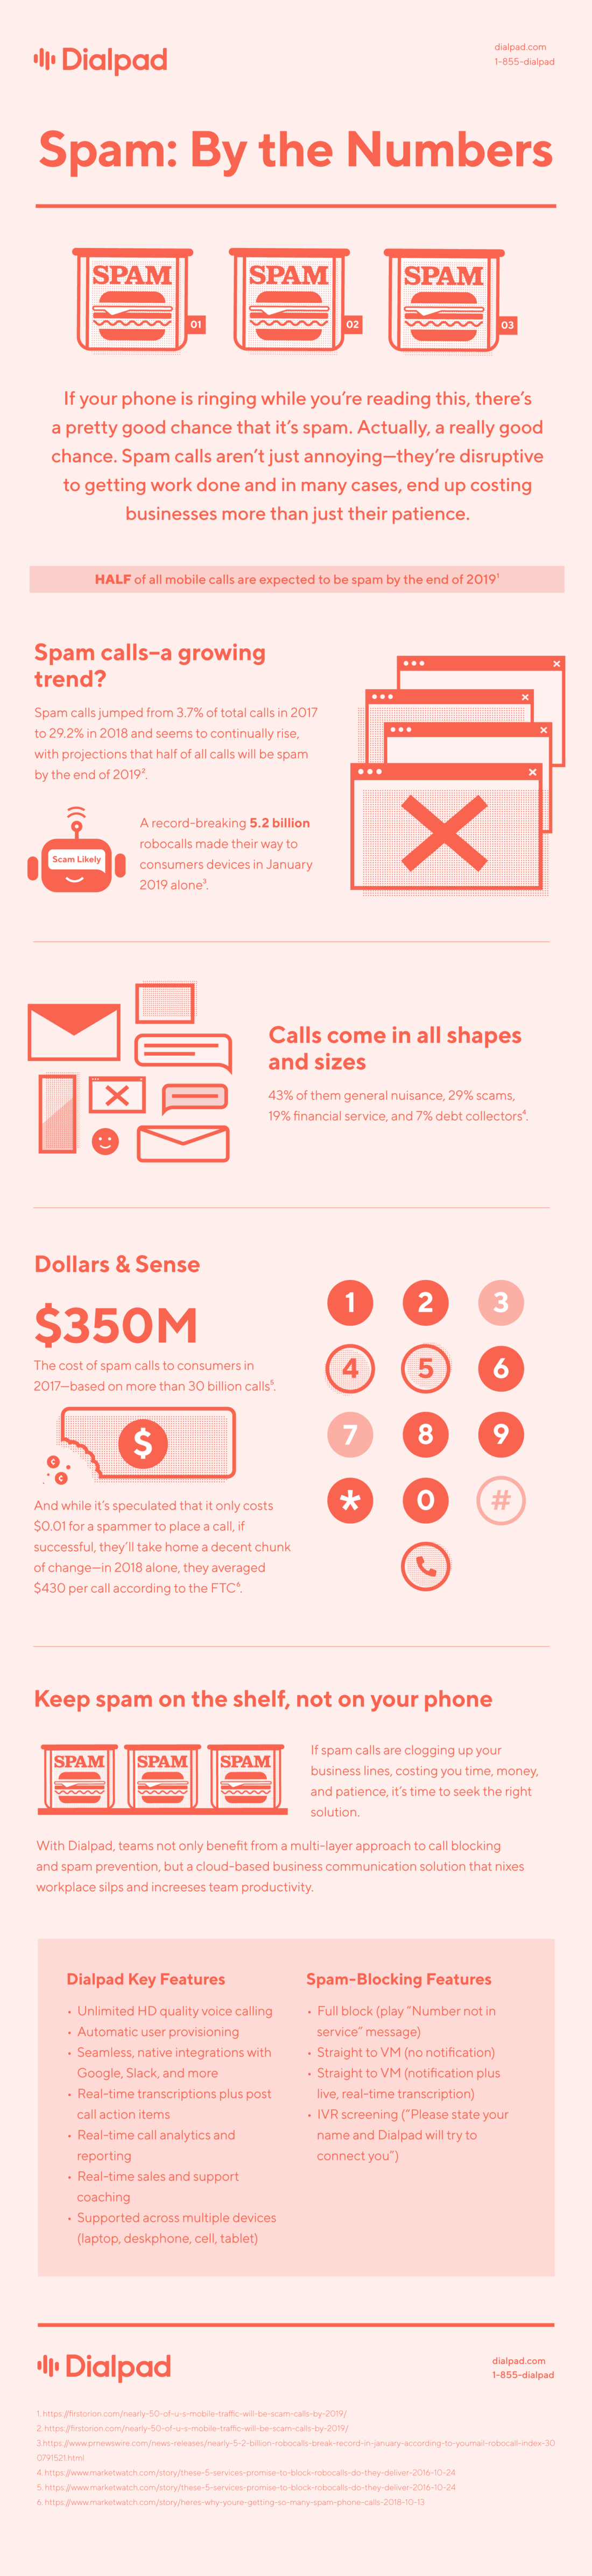 Dialpad Spam By The Numbers